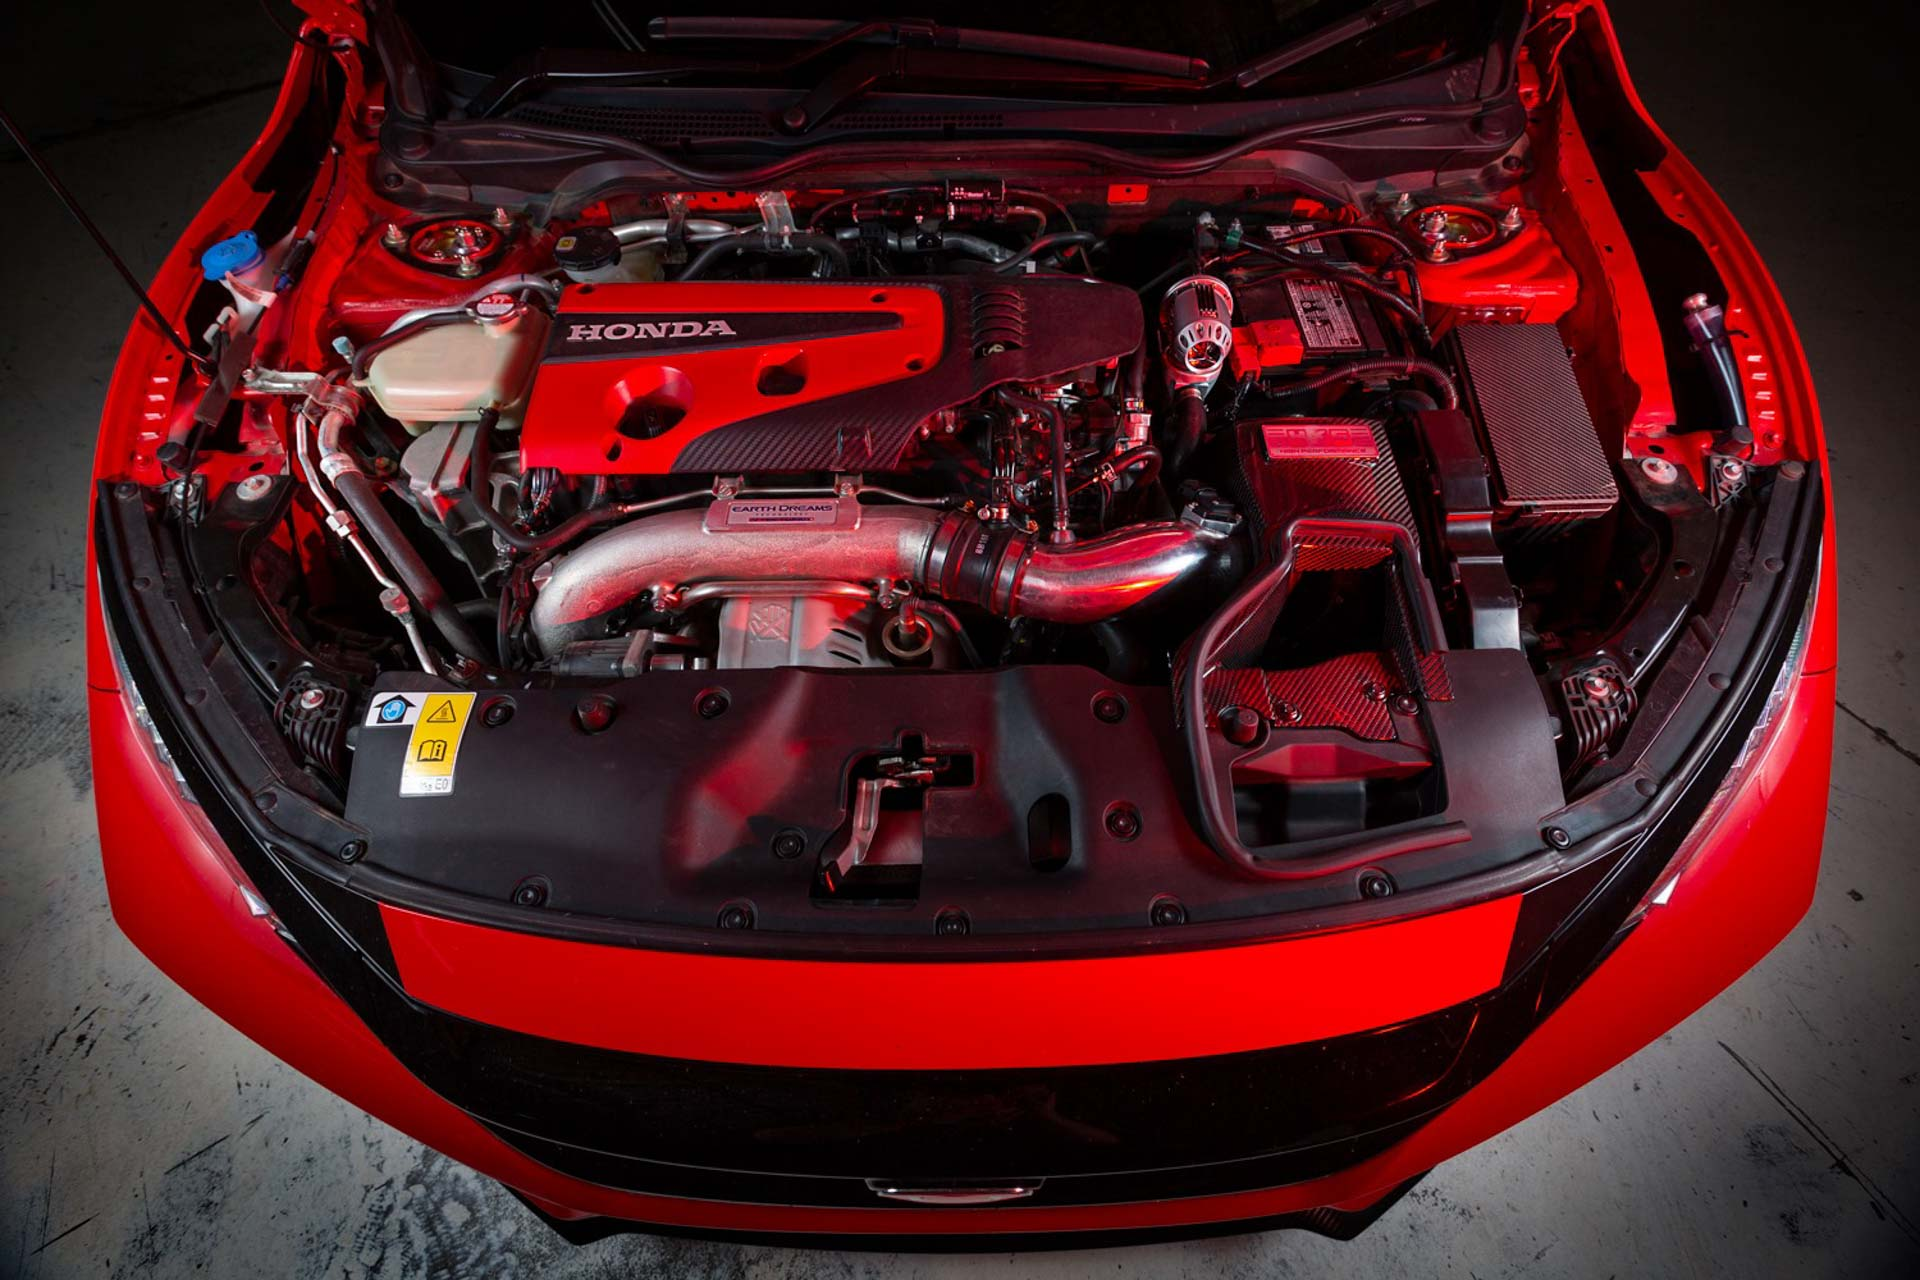 FK8 Civic TYPE R ECU Jailbreak 3 FK8 Civic TYPE R ECU Jailbreak ECUs made by Bosch for Honda cannot be programmed over OBDII from factory, which is why they must be jailbroken.